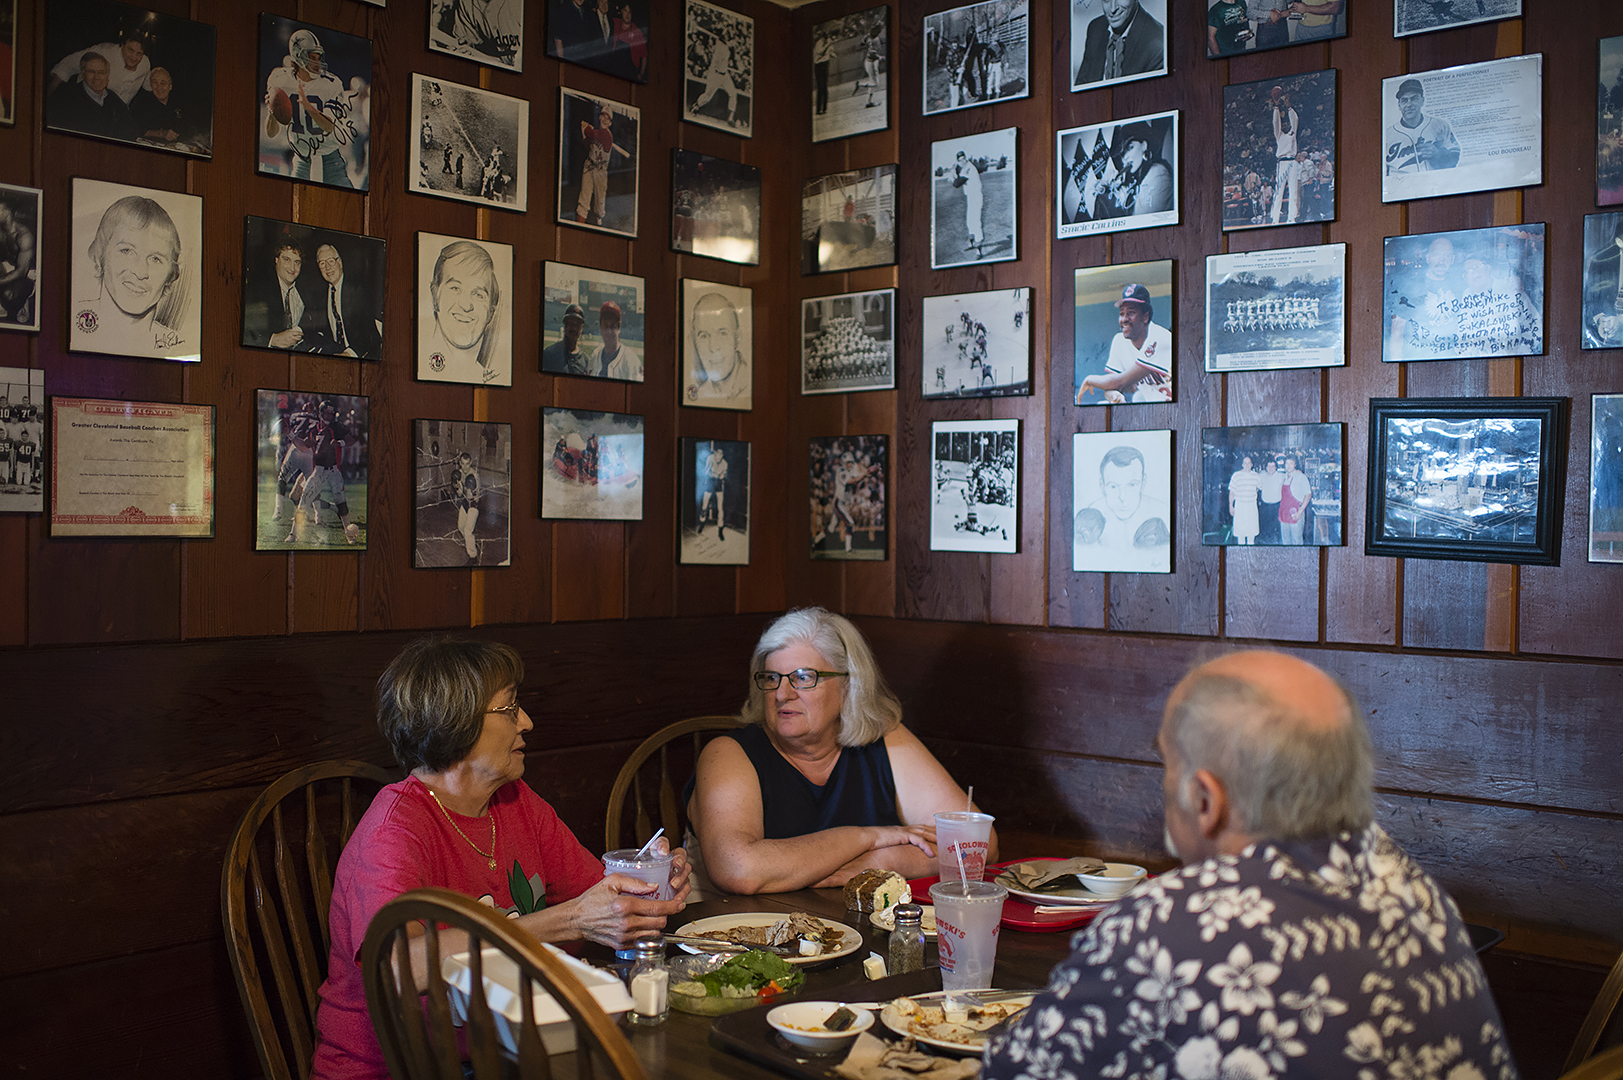 Patron's can enjoy a homey atmosphere in one of the three dining rooms at Sokolowski's University Inn, each filled with historic photos of Cleveland sports, local history and plenty of images of The Pope. (Dustin Franz/The Washington Post)